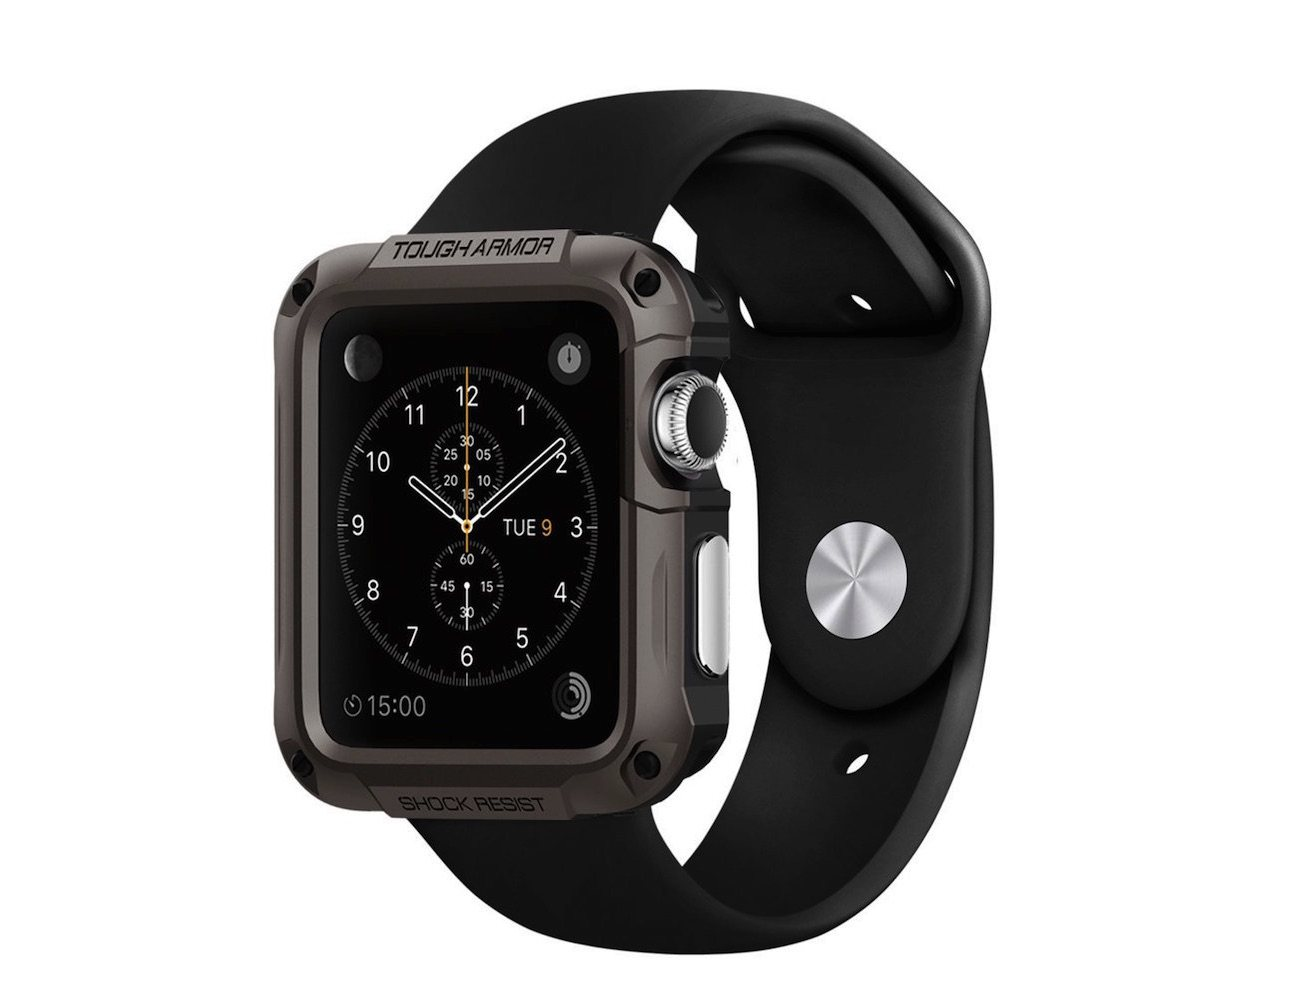 Tough Armor Case for the Apple Watch by Spigen